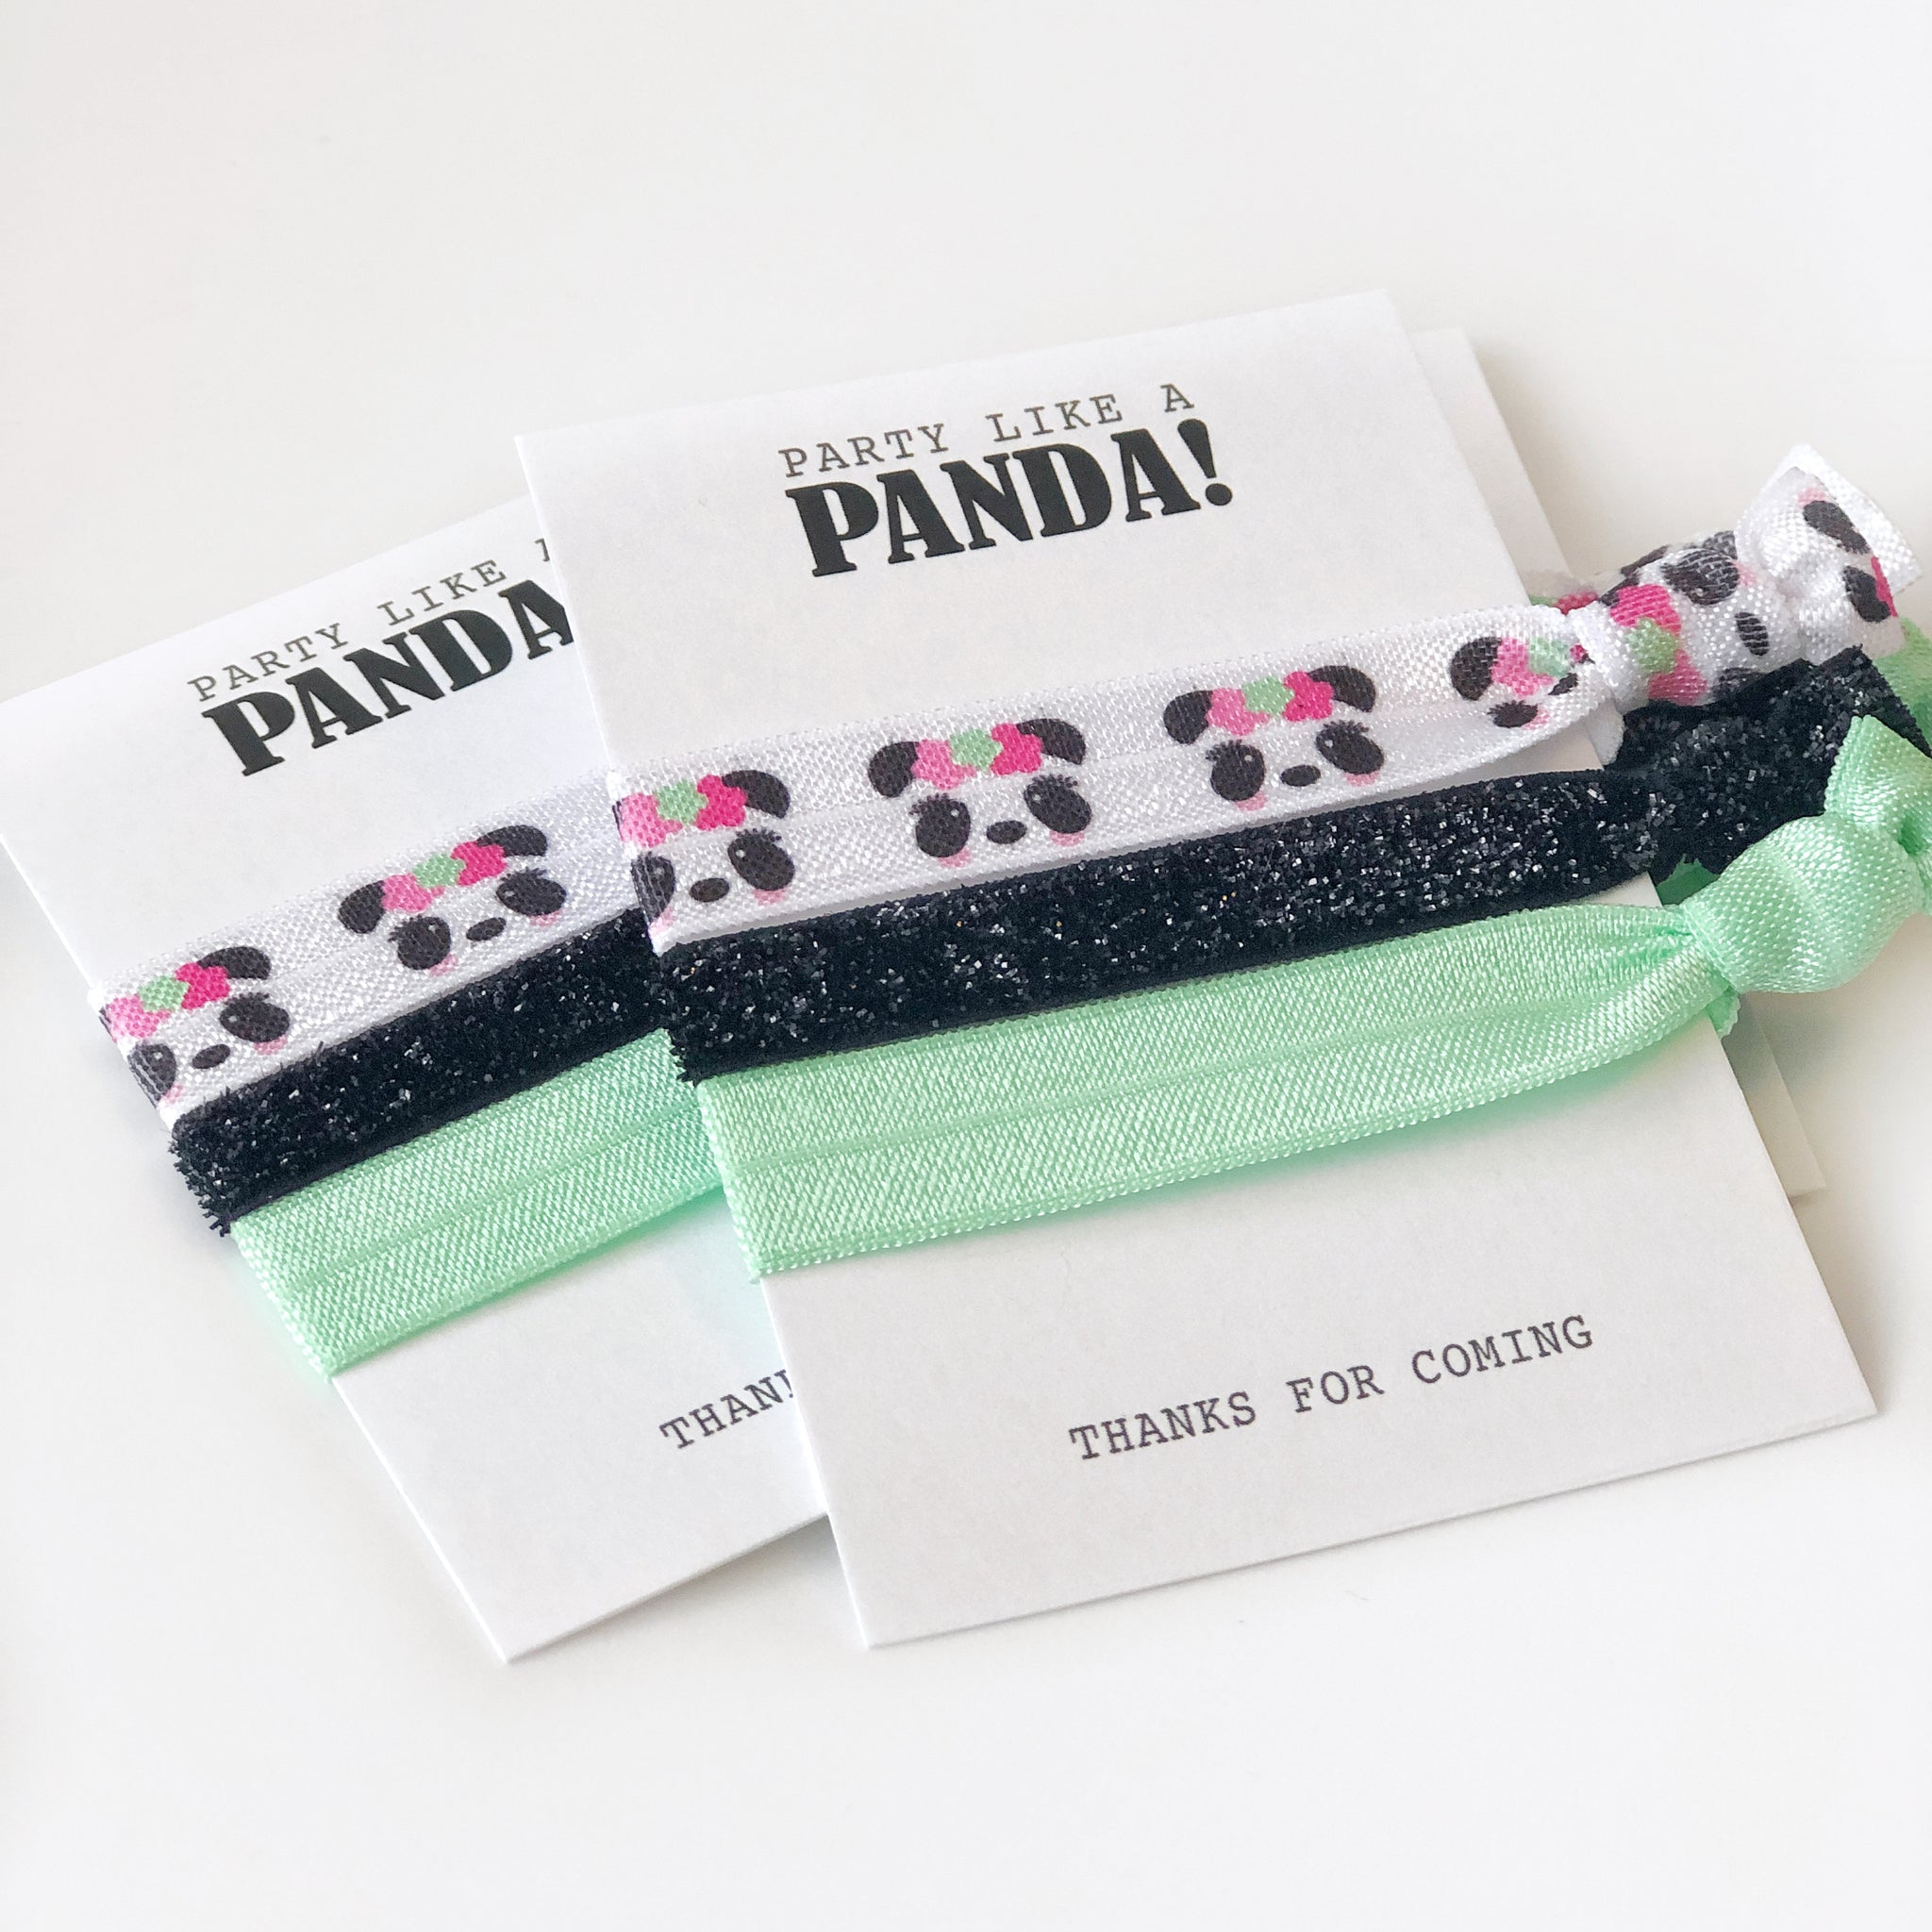 Panda Party Favors - @PlumPolkaDot